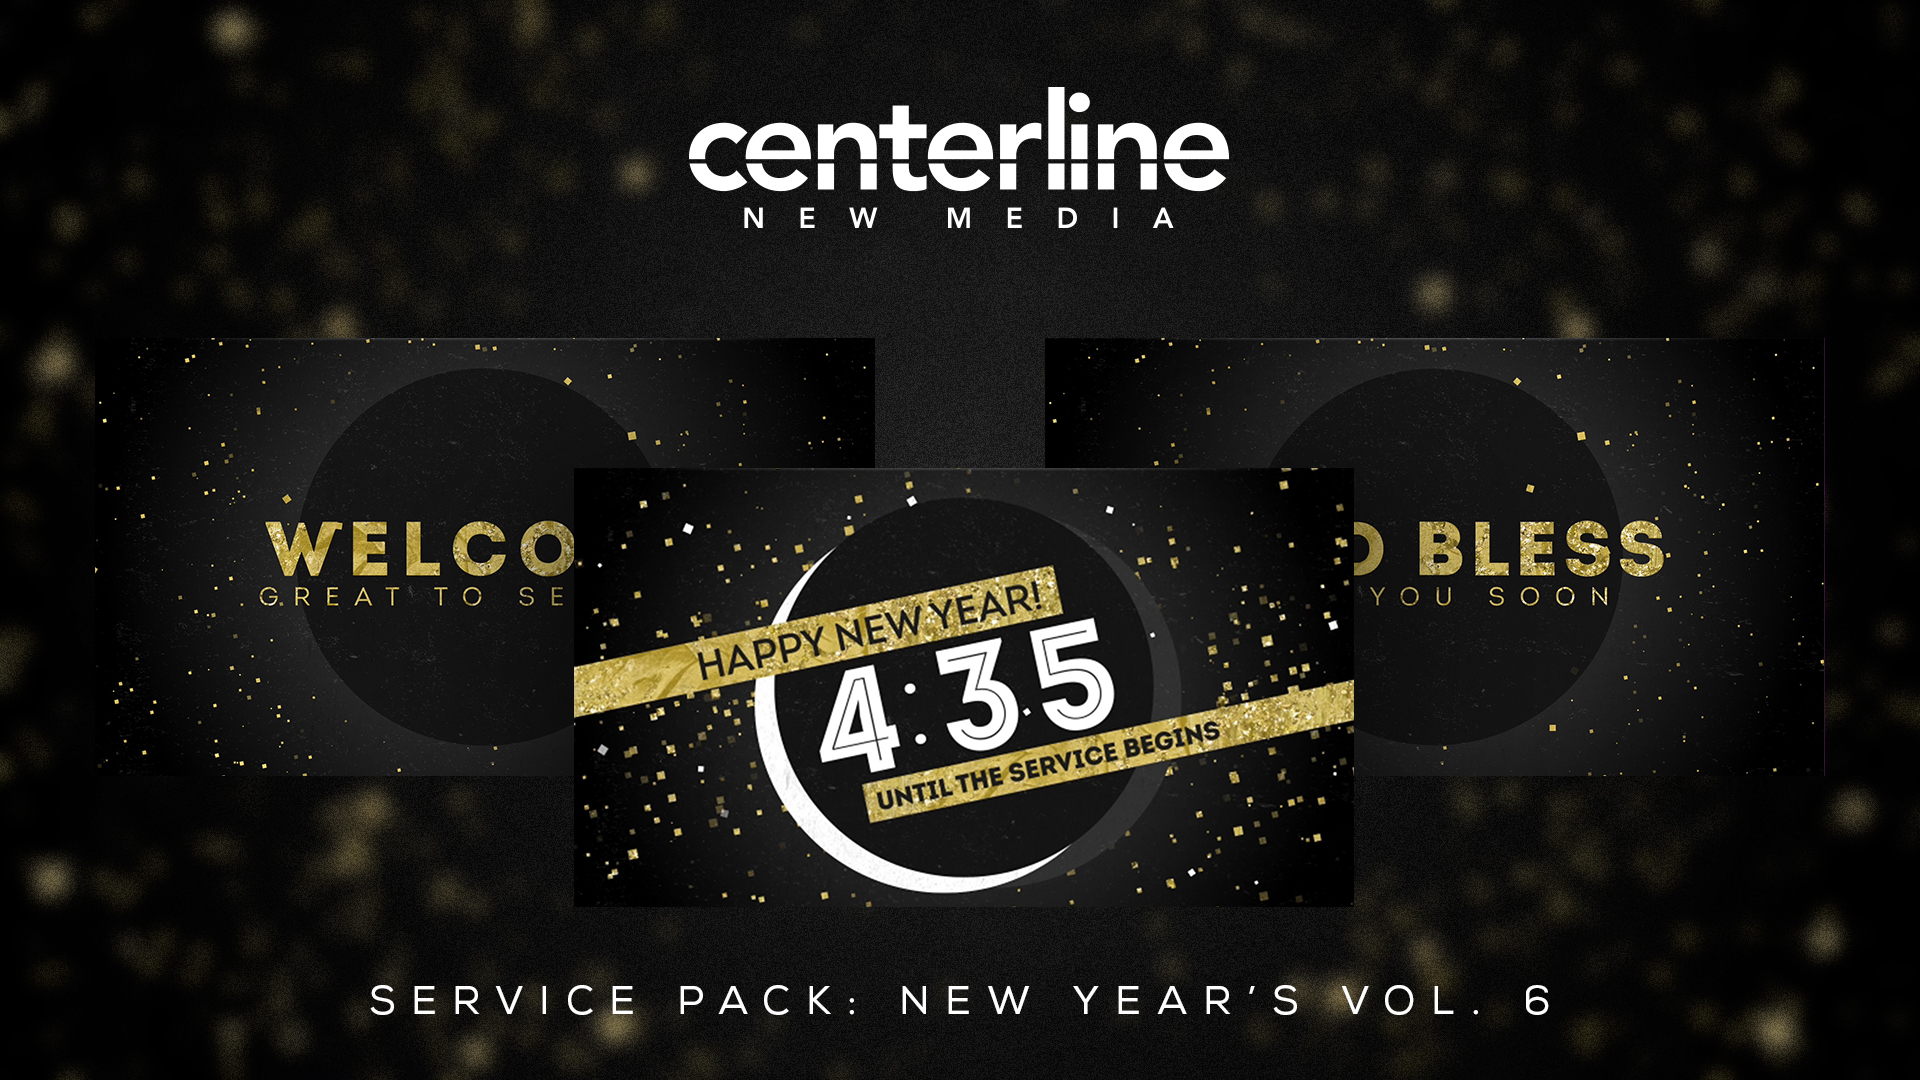 SERVICE PACK: NEW YEAR'S VOL. 6